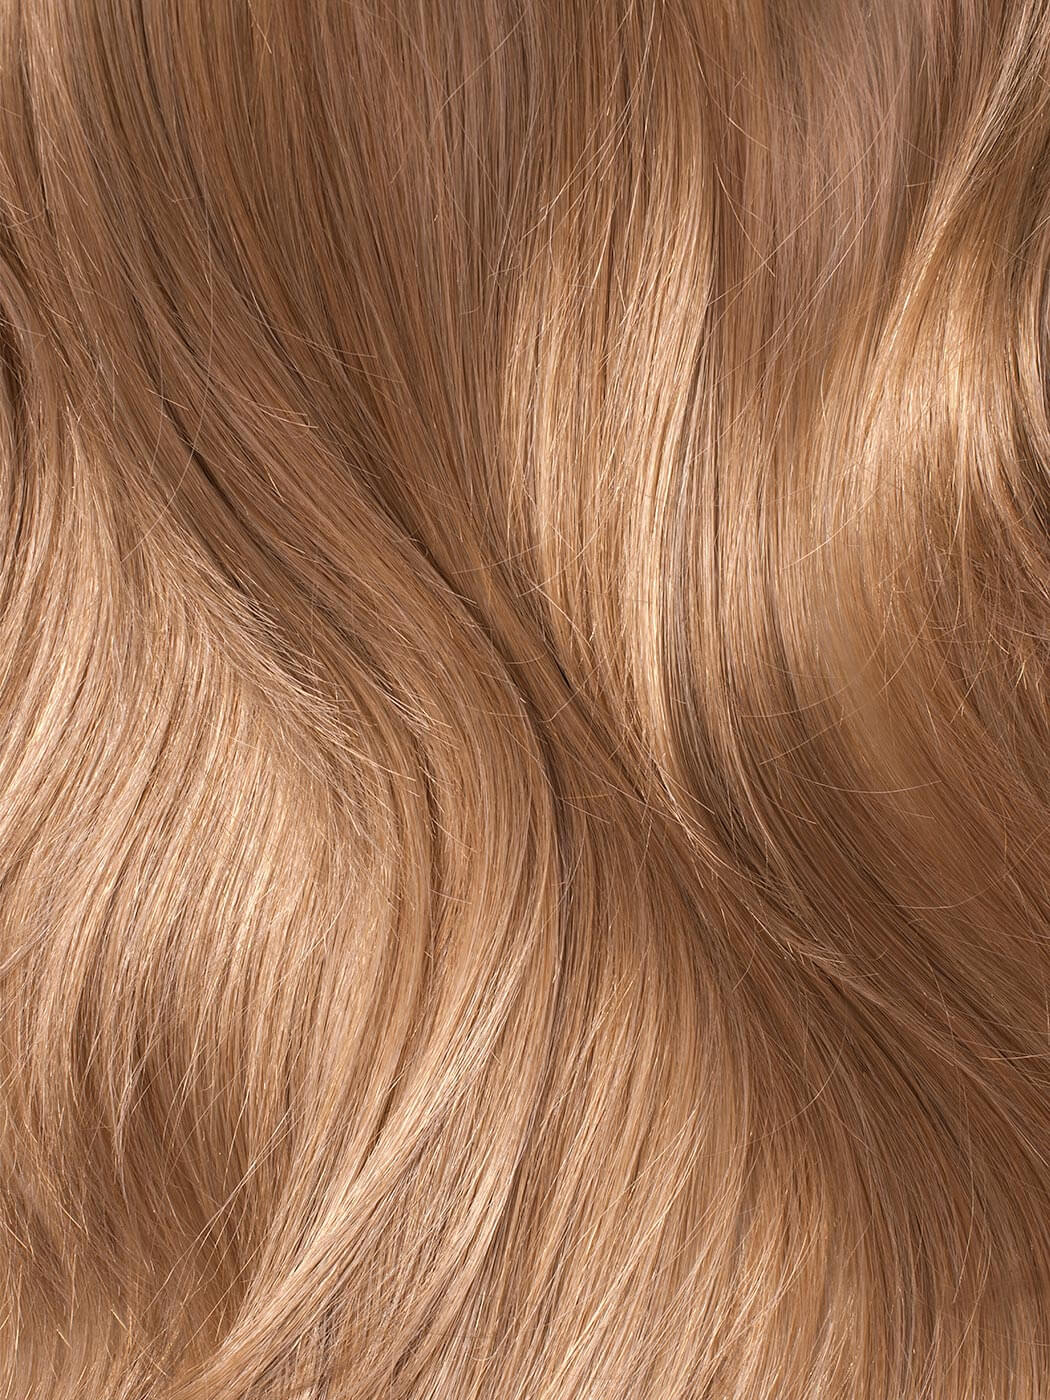 Goldilocks Hair Salon in Las Vegas, NV with Reviews - YP.com